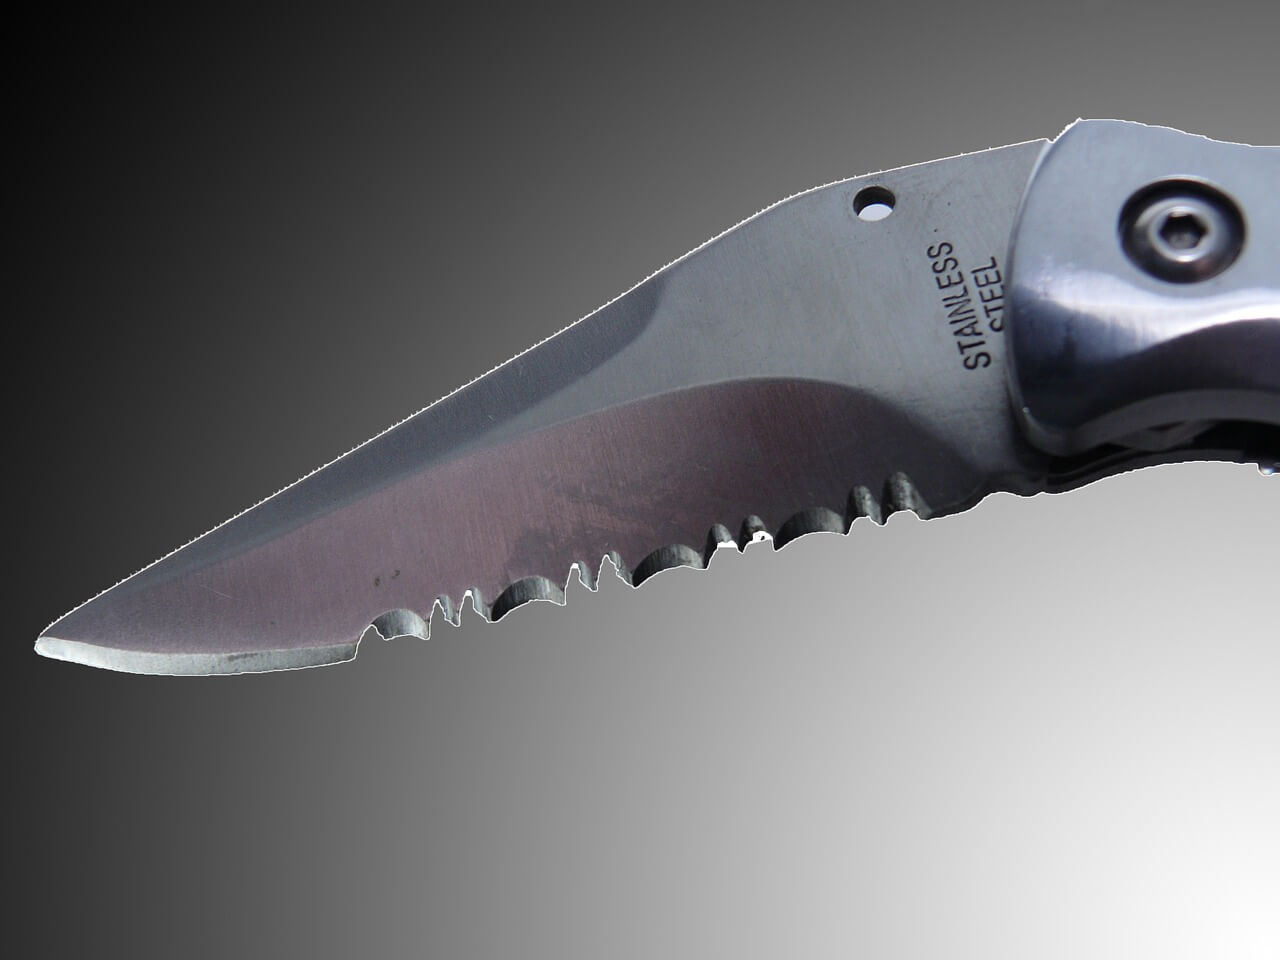 Real Men S Guide To The Best Way To Sharpen A Pocket Knife